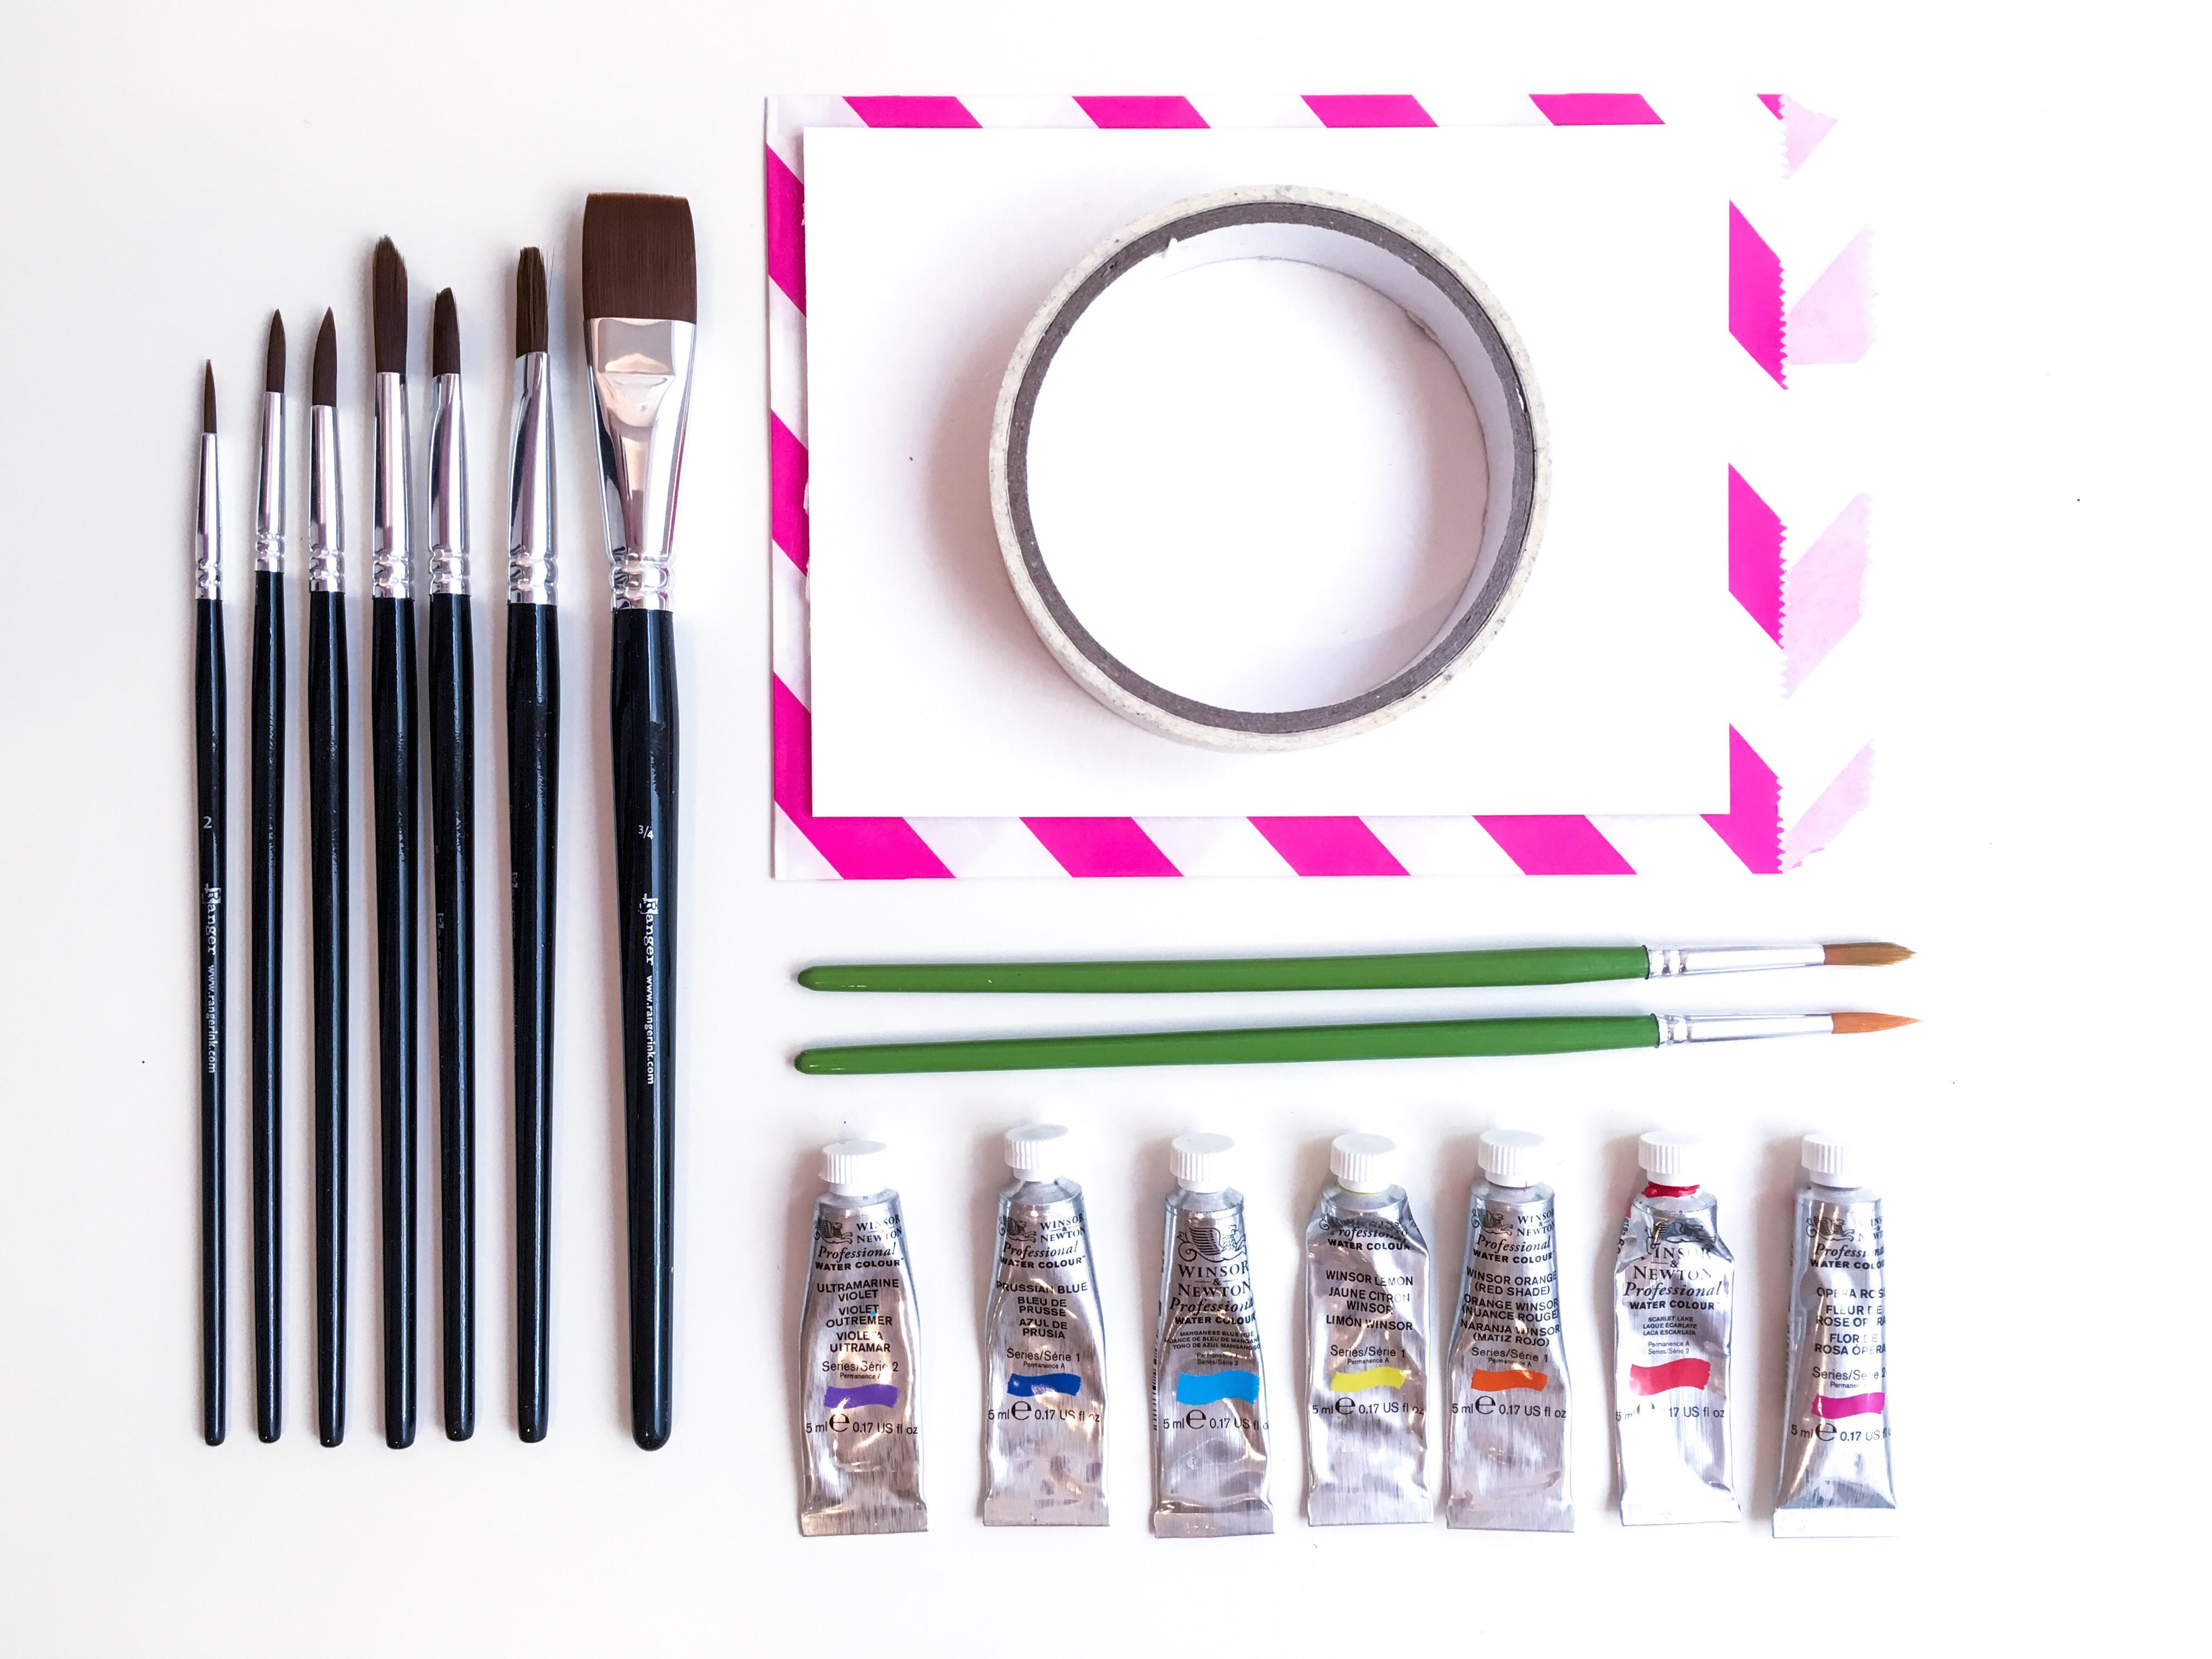 Starting a new hobby in watercolor doesn't need to be daunting. Check out our guide to watercolor for beginners from Natalie Malan on the CreativeLive blog.